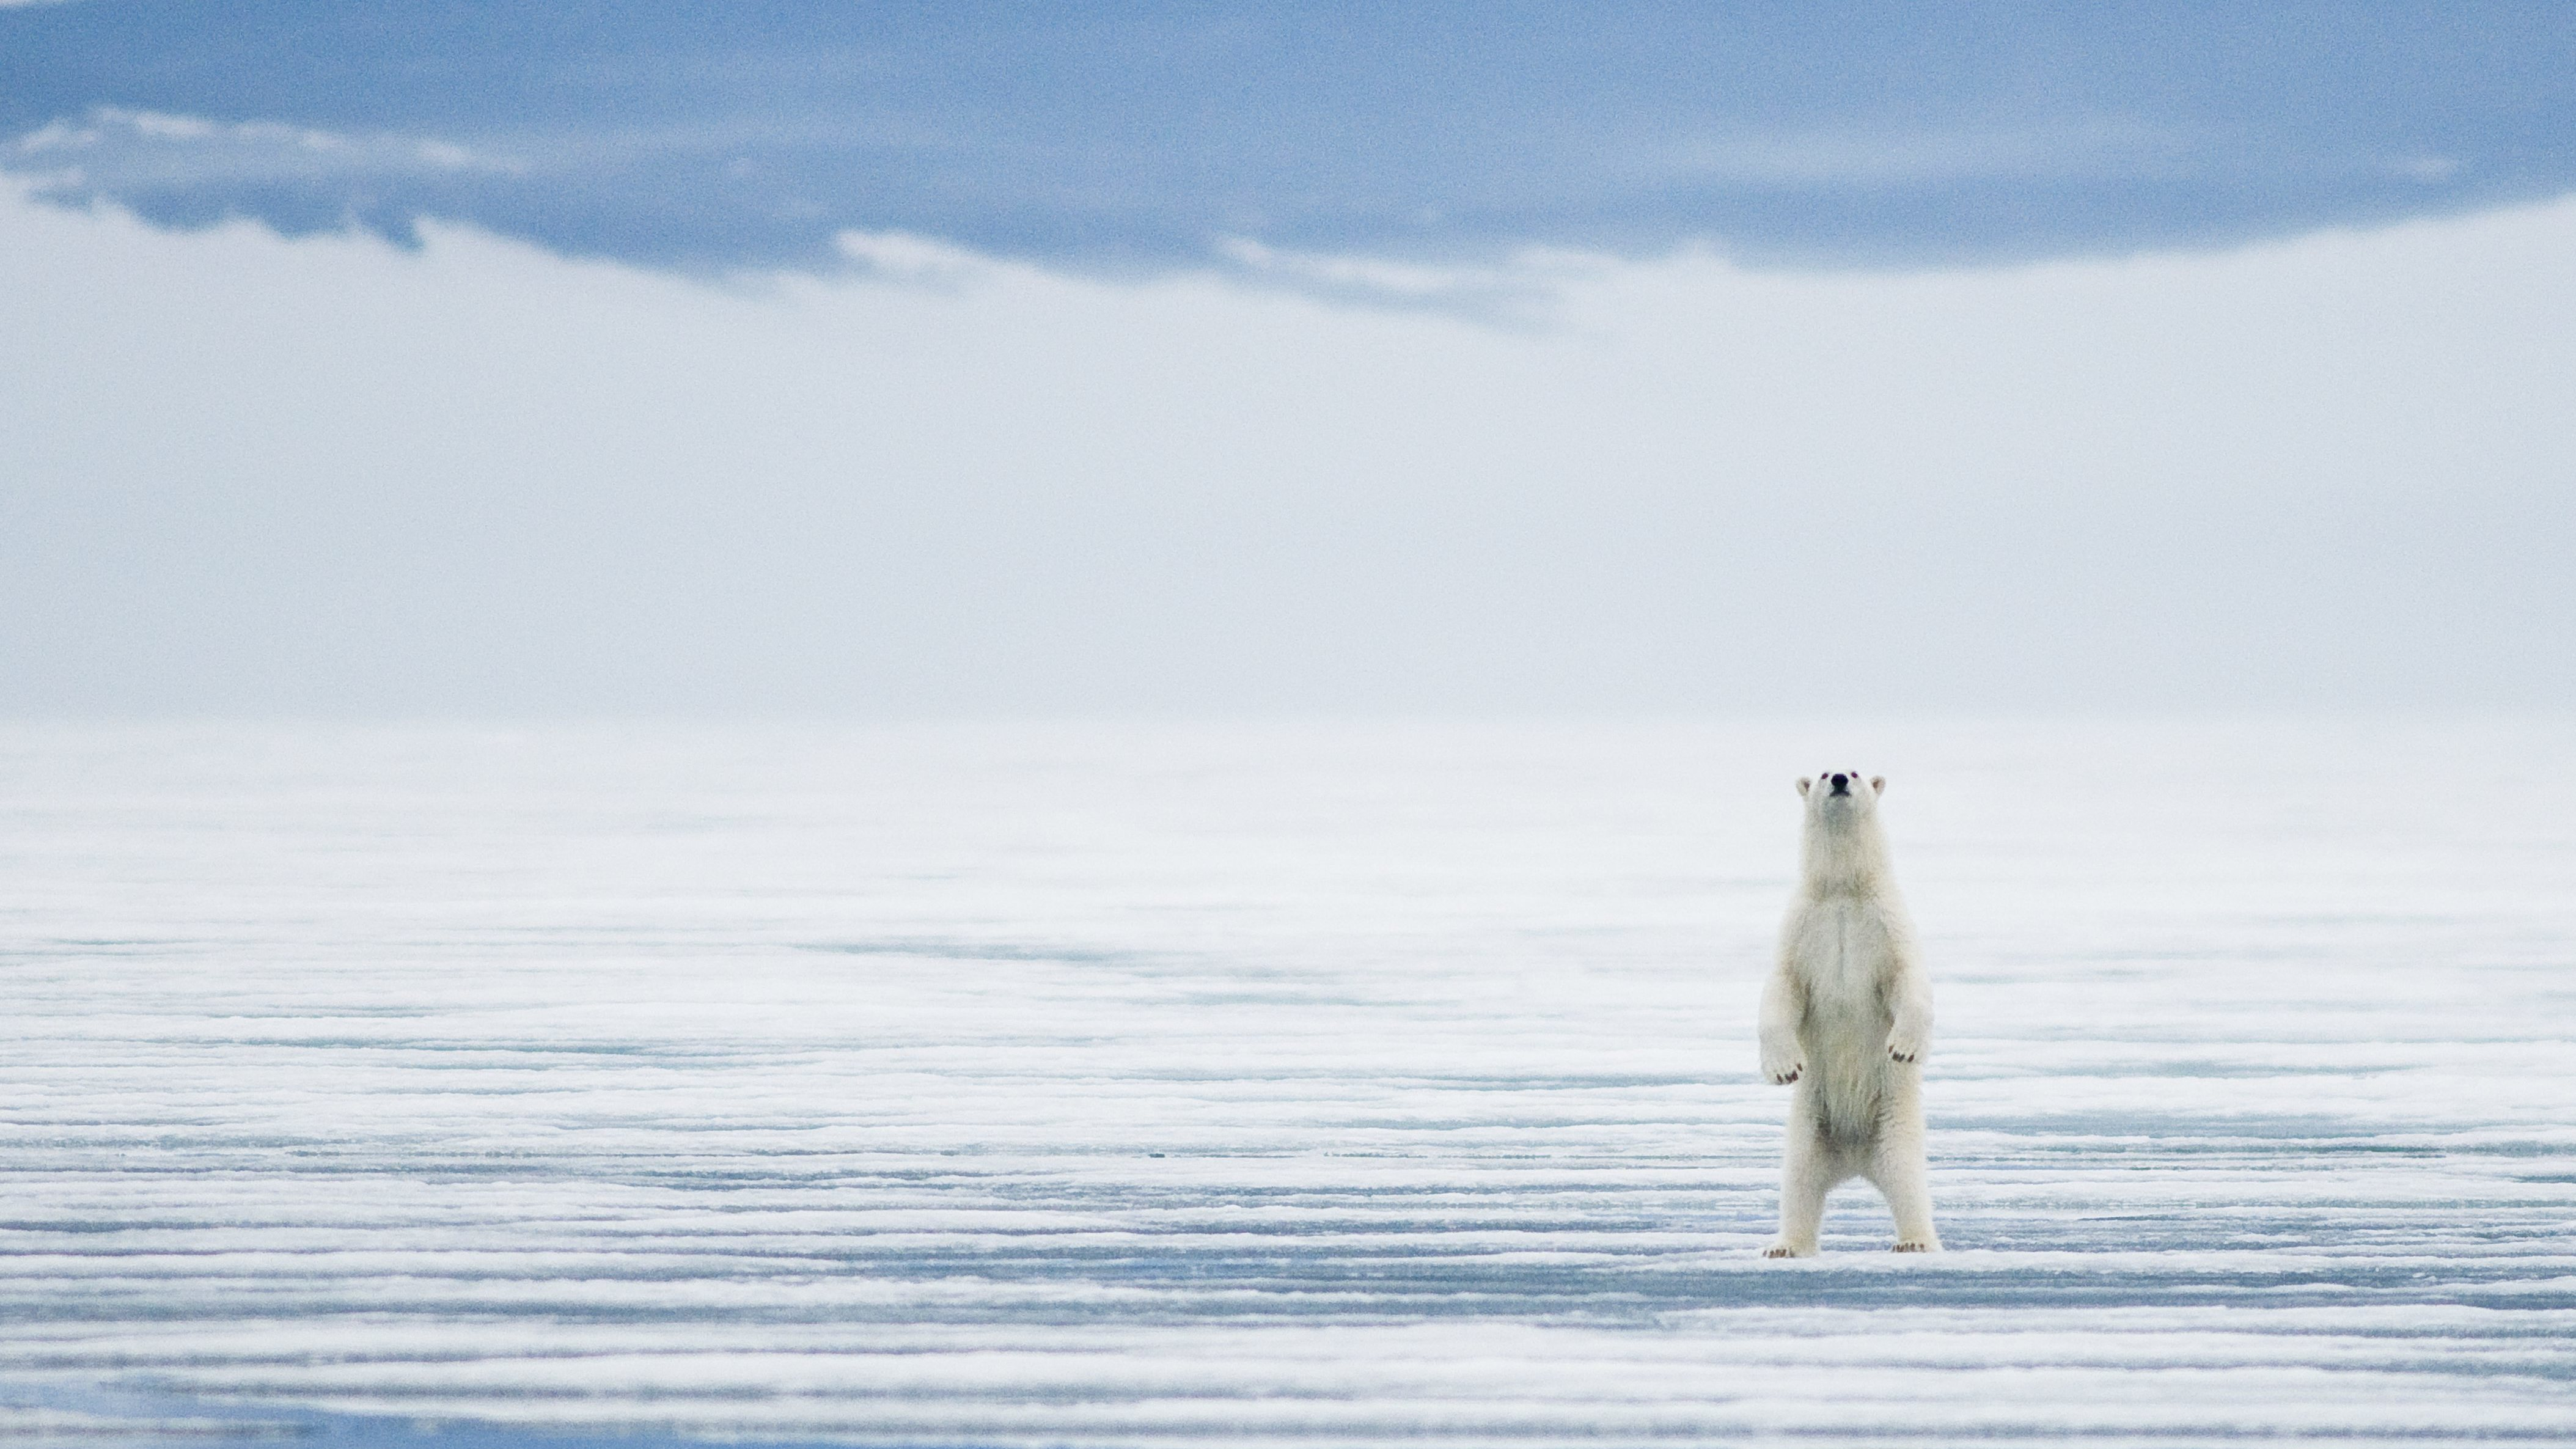 A polar bear stands tall during the summer of 2009 in Svalbard, Norway. (Photo by Steven Kazlowski/Barcroft Media via Getty Images)